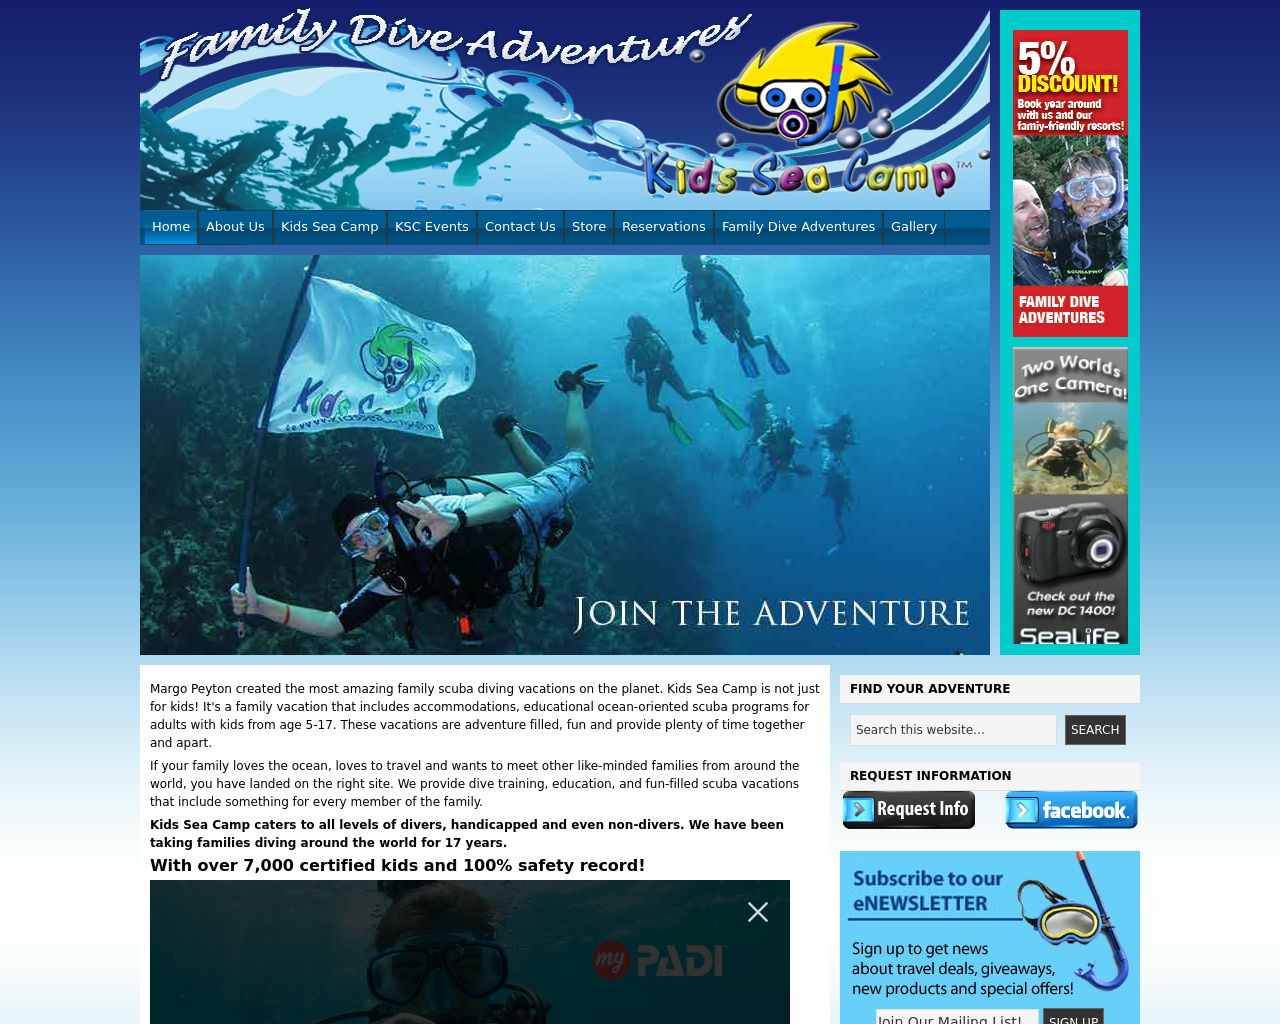 Family-Dive-Adventures-Advertising-Reviews-Pricing